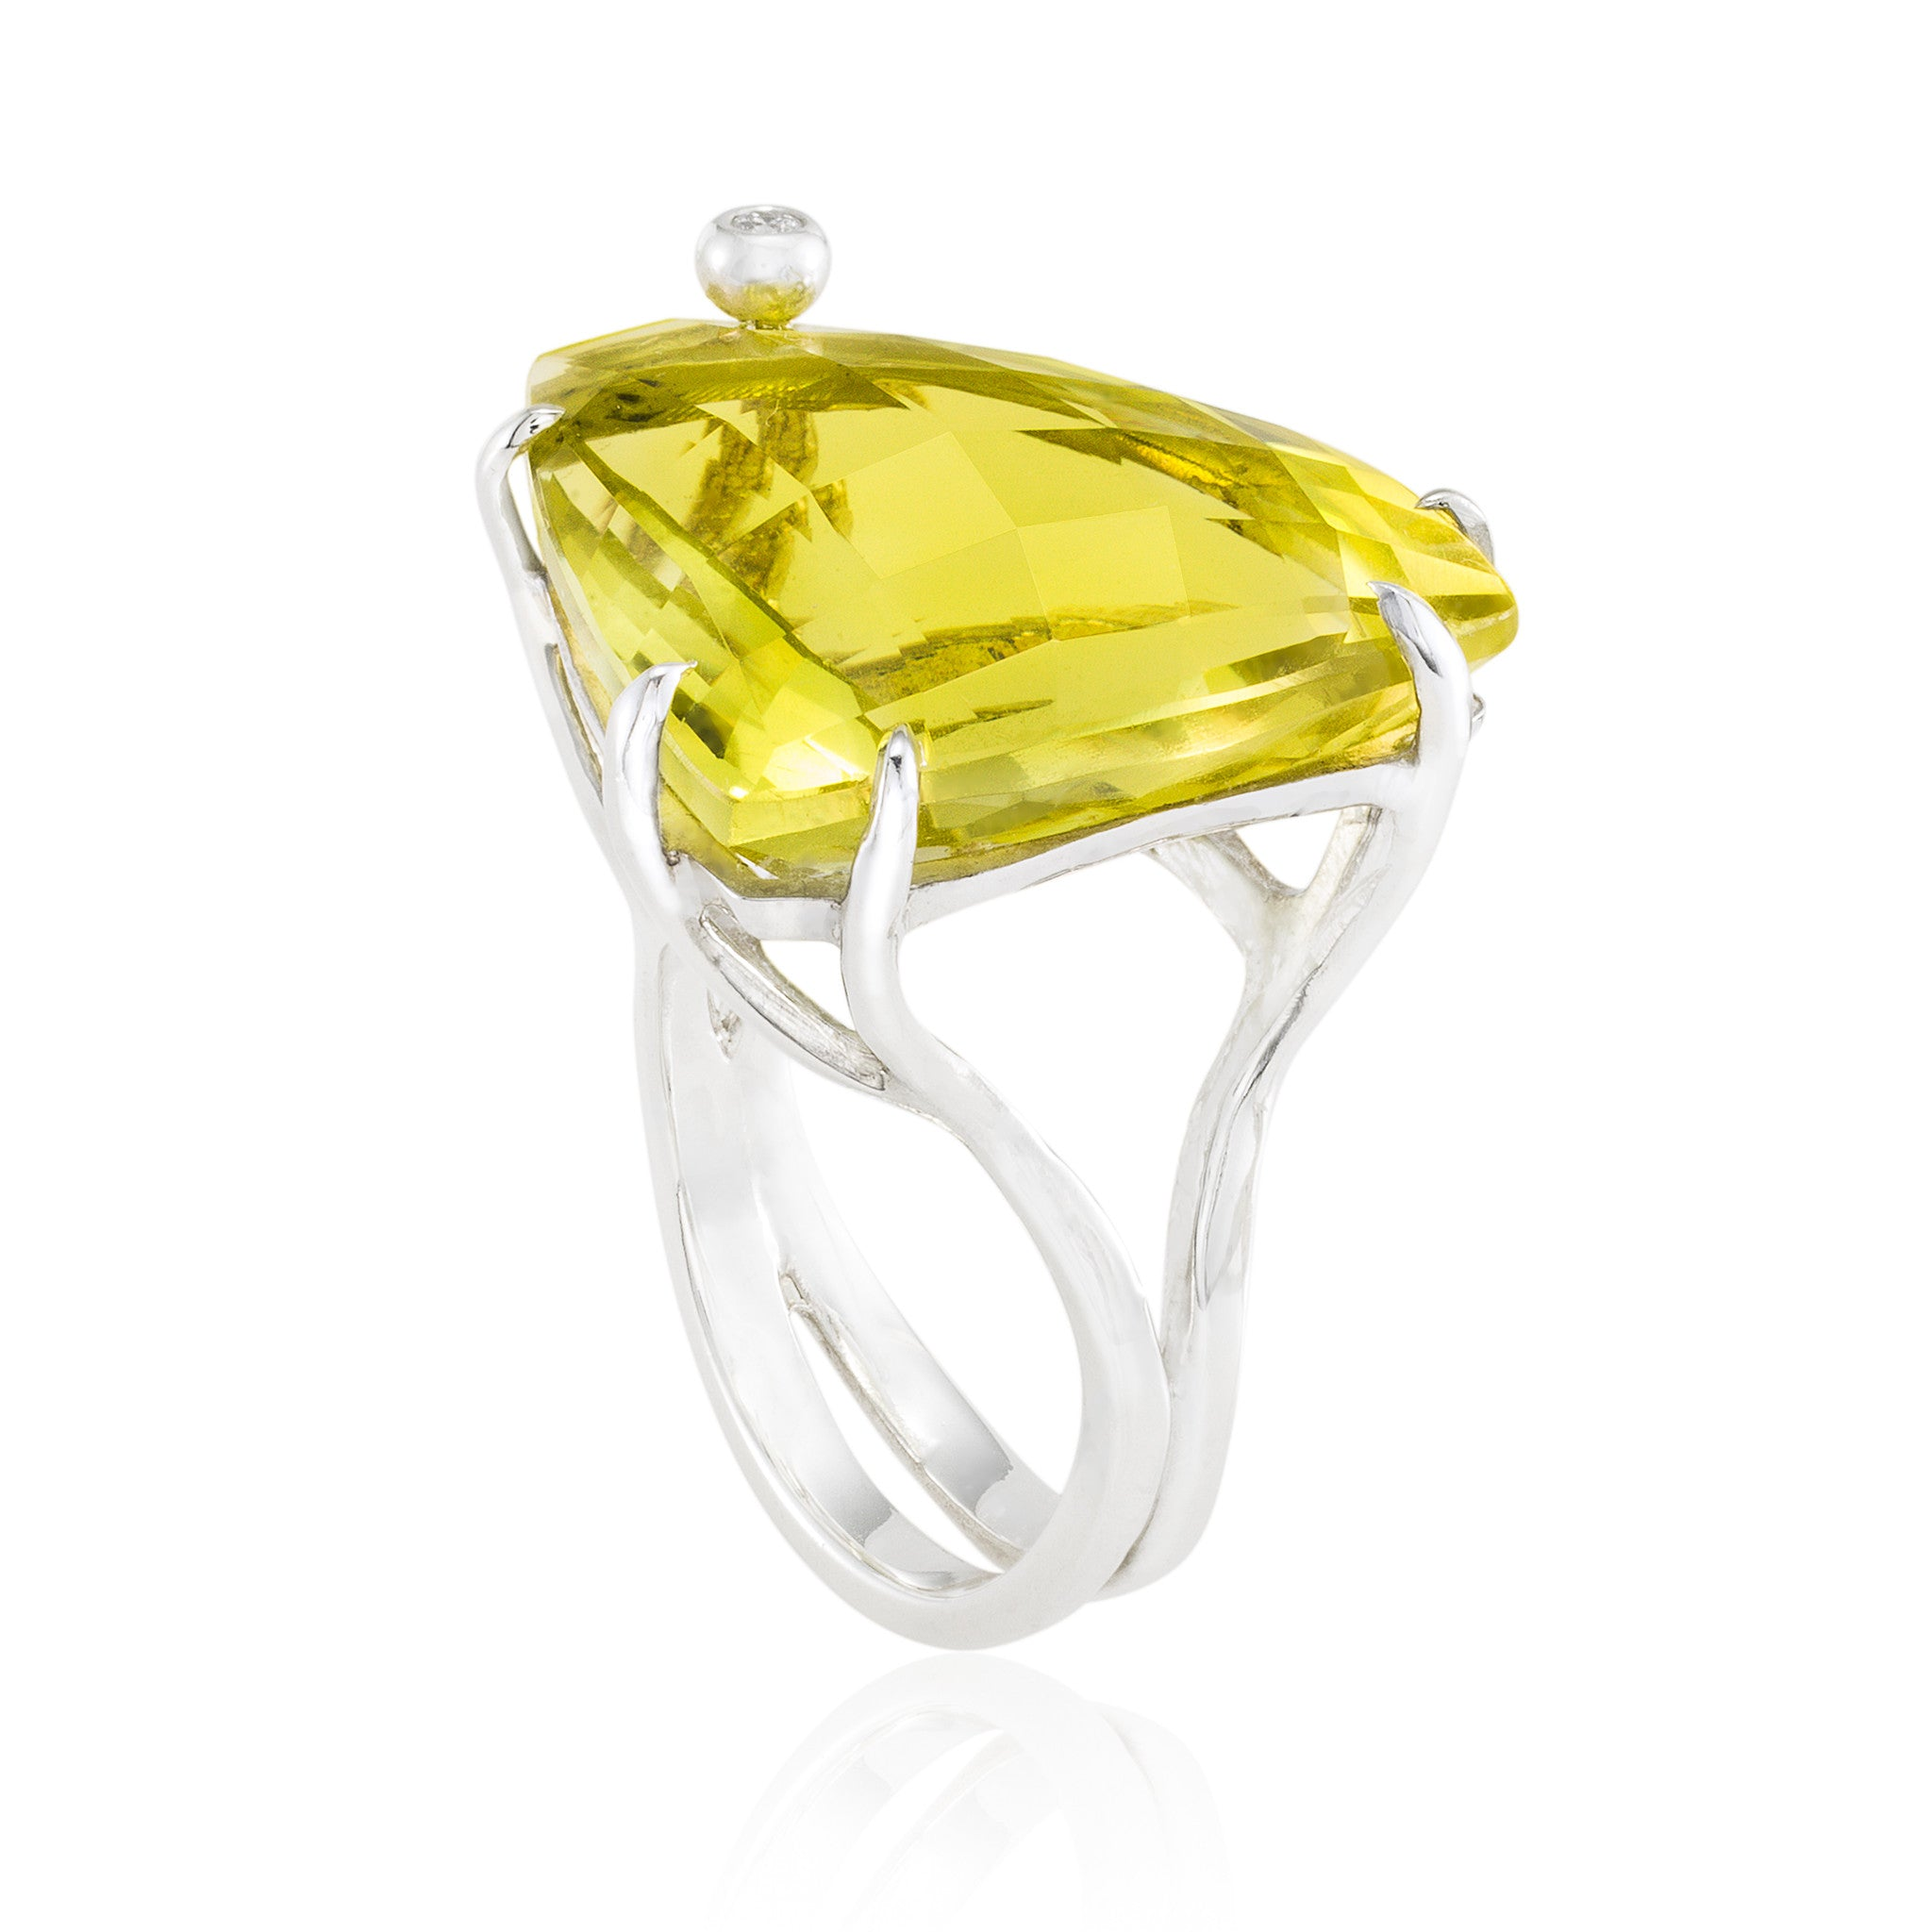 Triangle Cocktail Ring: Lemon Quartz